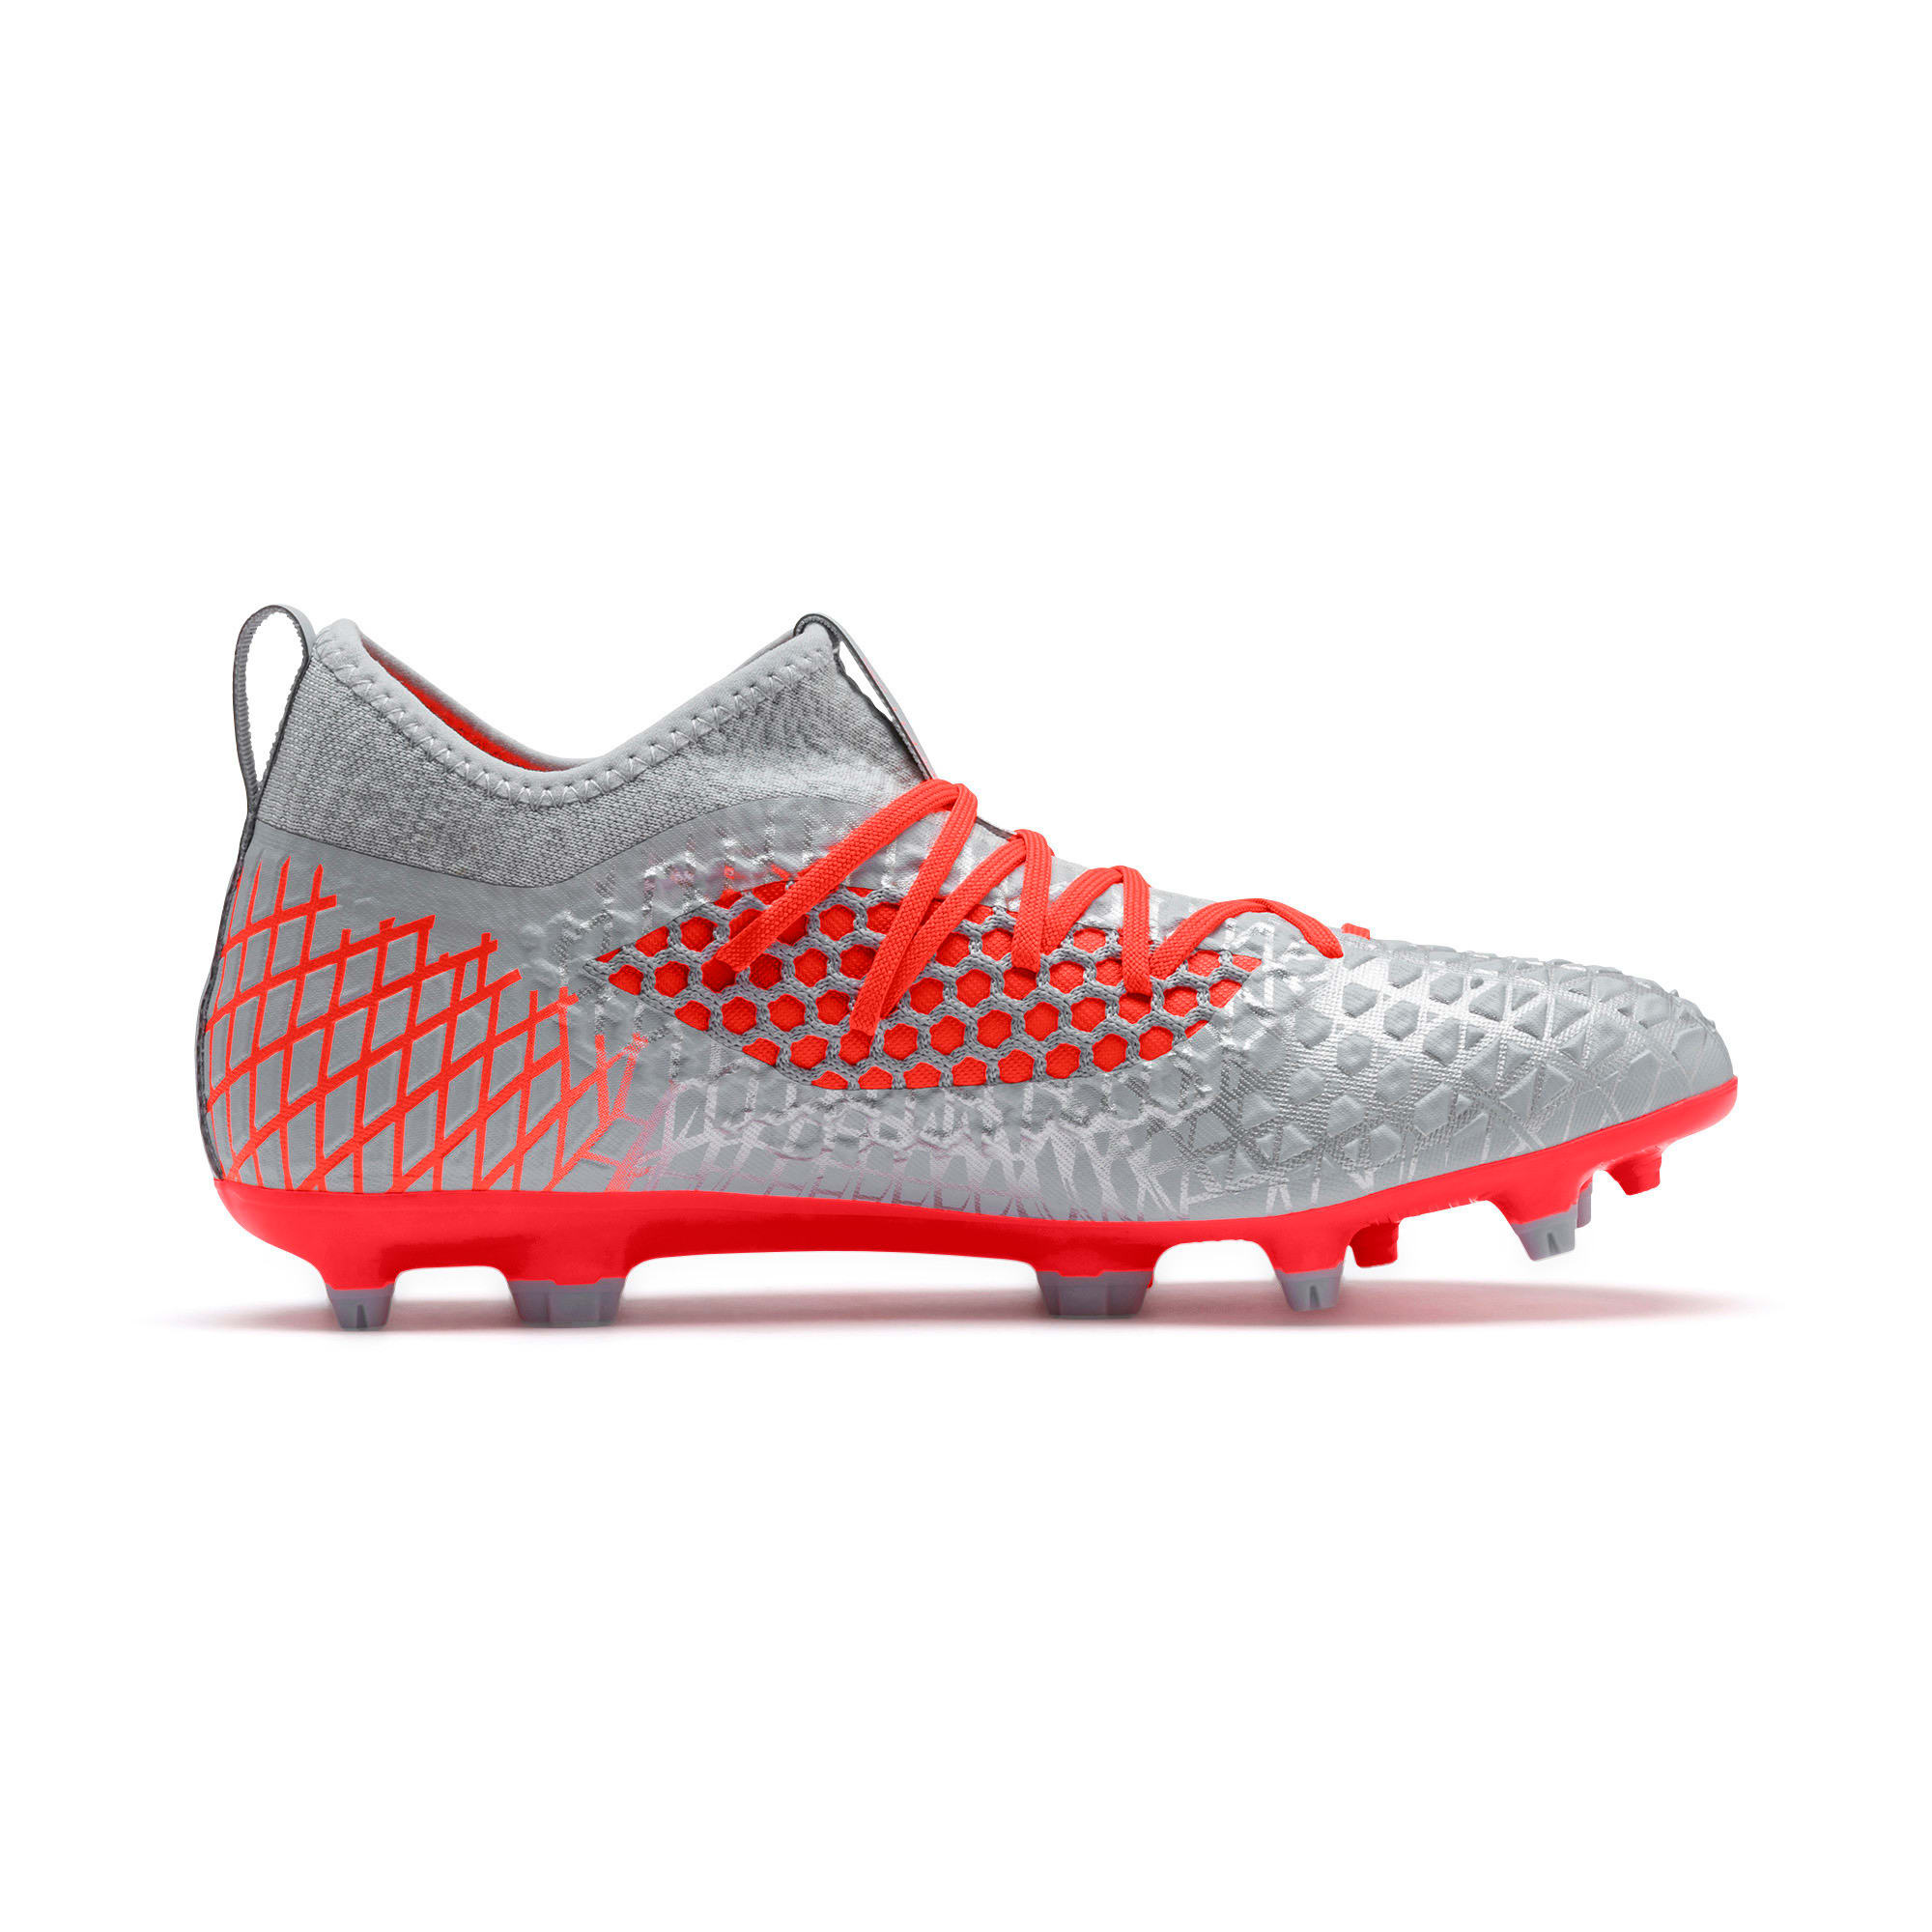 Thumbnail 6 of FUTURE 4.3 NETFIT FG/AG Men's Soccer Cleats, Glacial Blue-Nrgy Red, medium